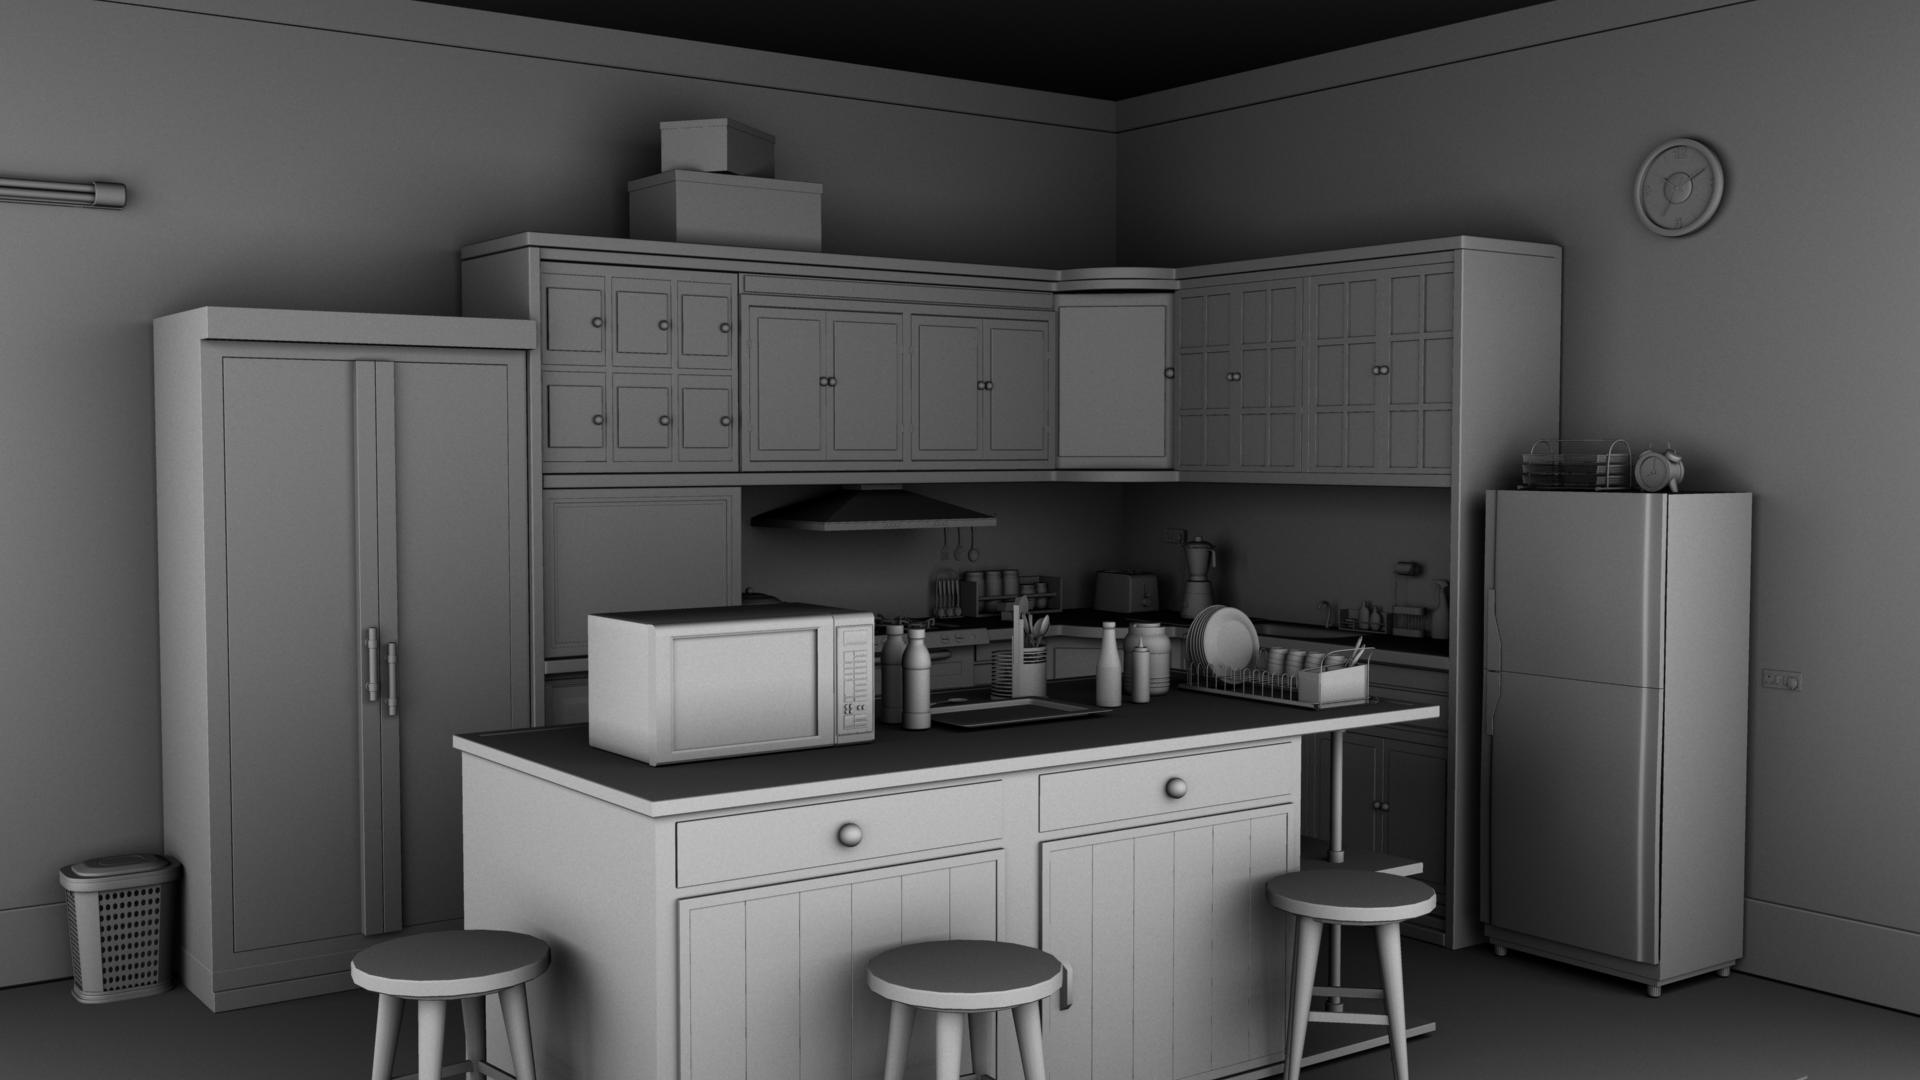 Kitchen 3d model buy kitchen 3d model flatpyramid for Kitchen modeler